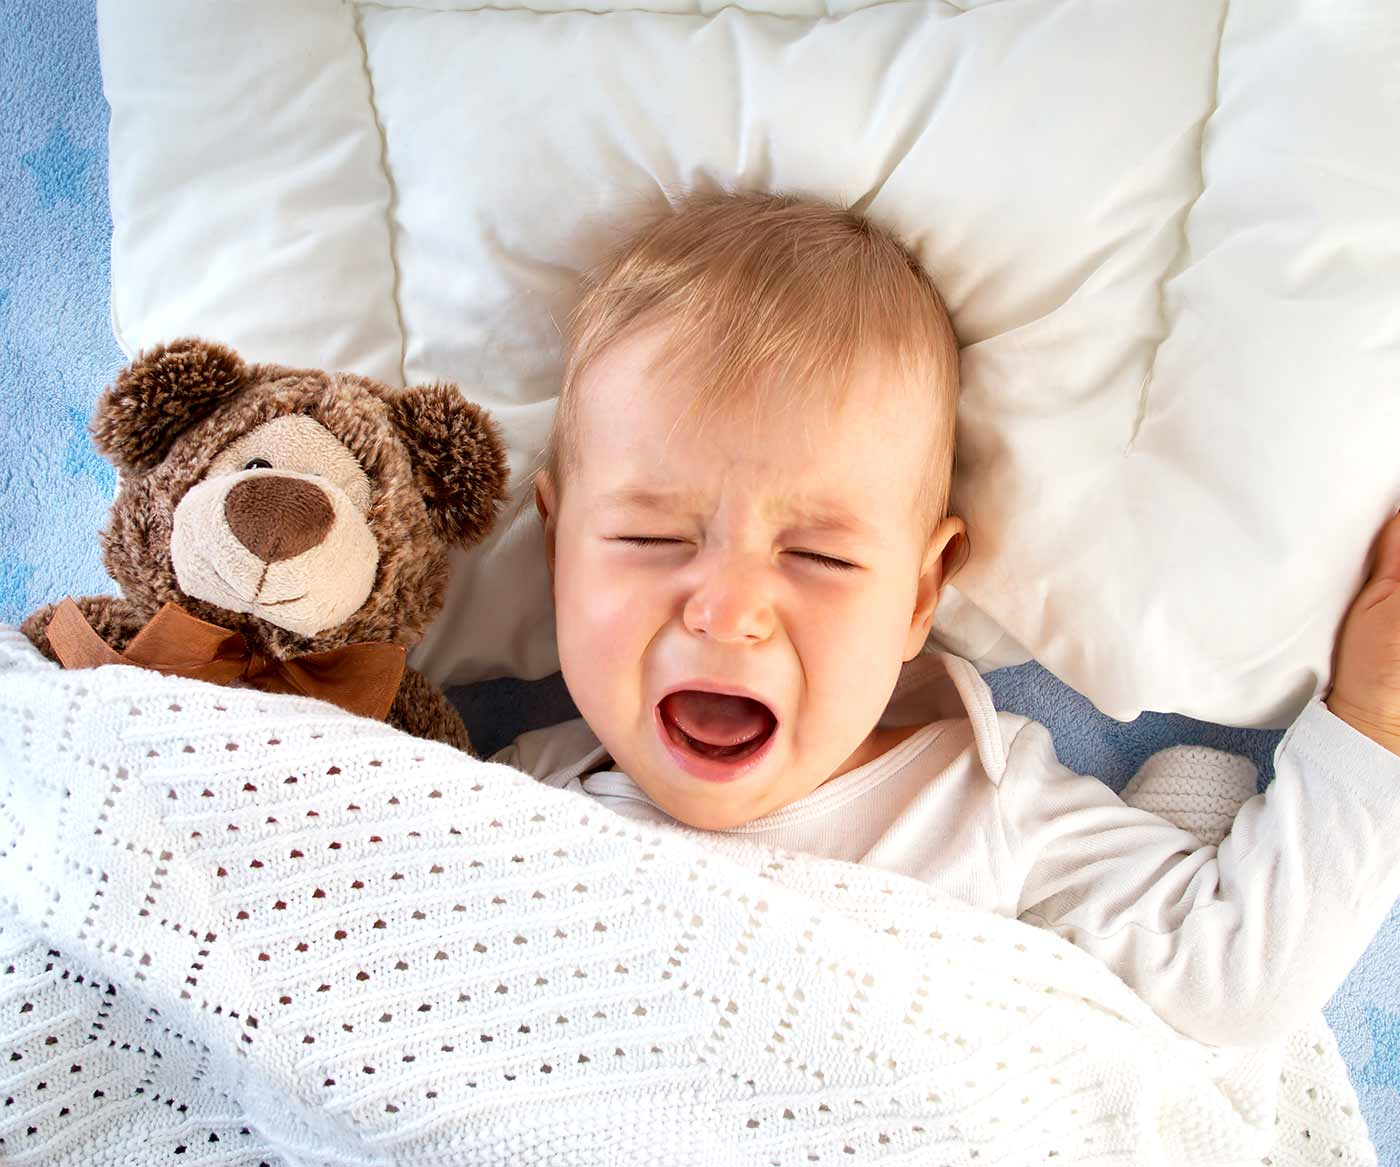 A little boy going through toddler sleep regression